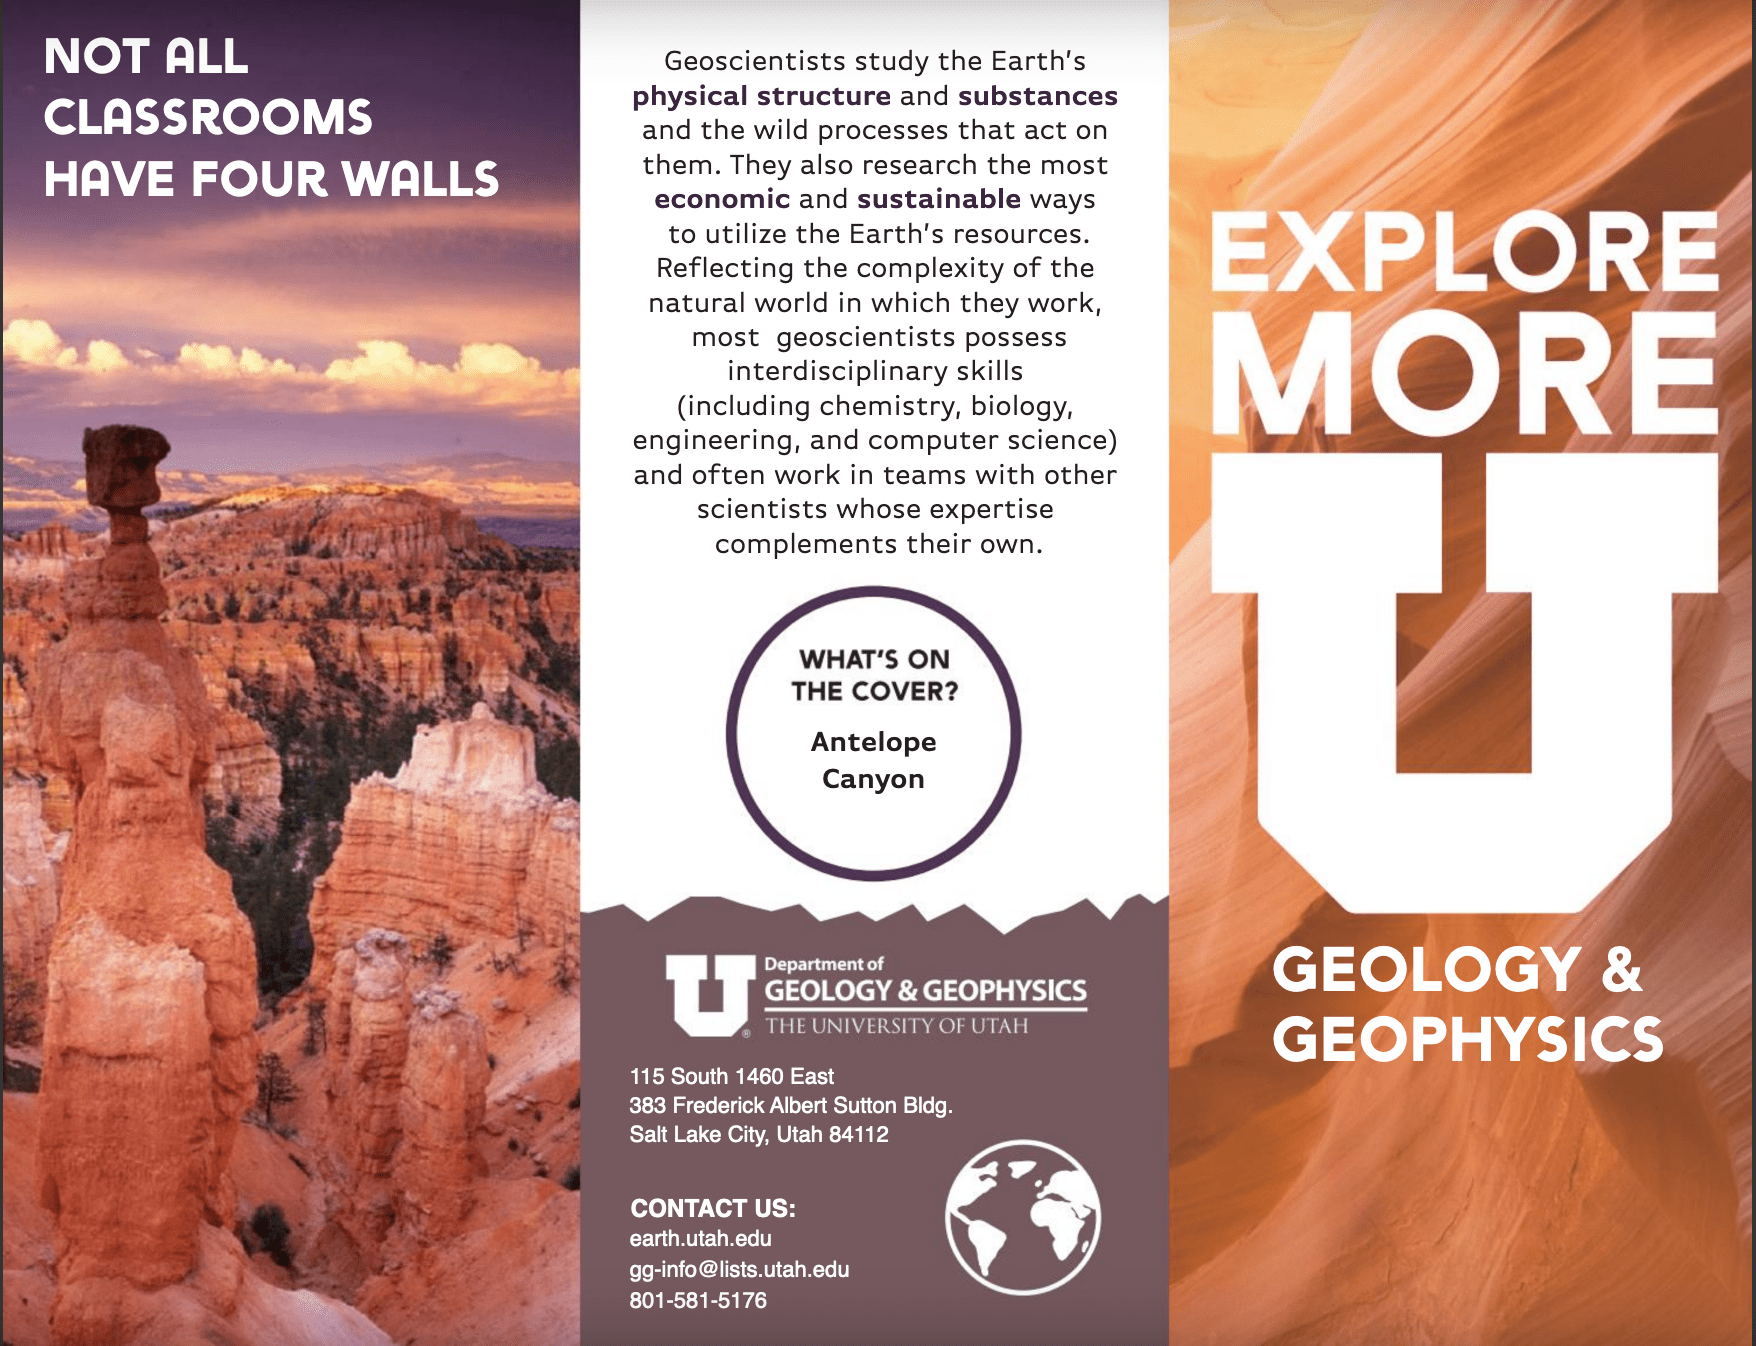 Geology & Geophysics